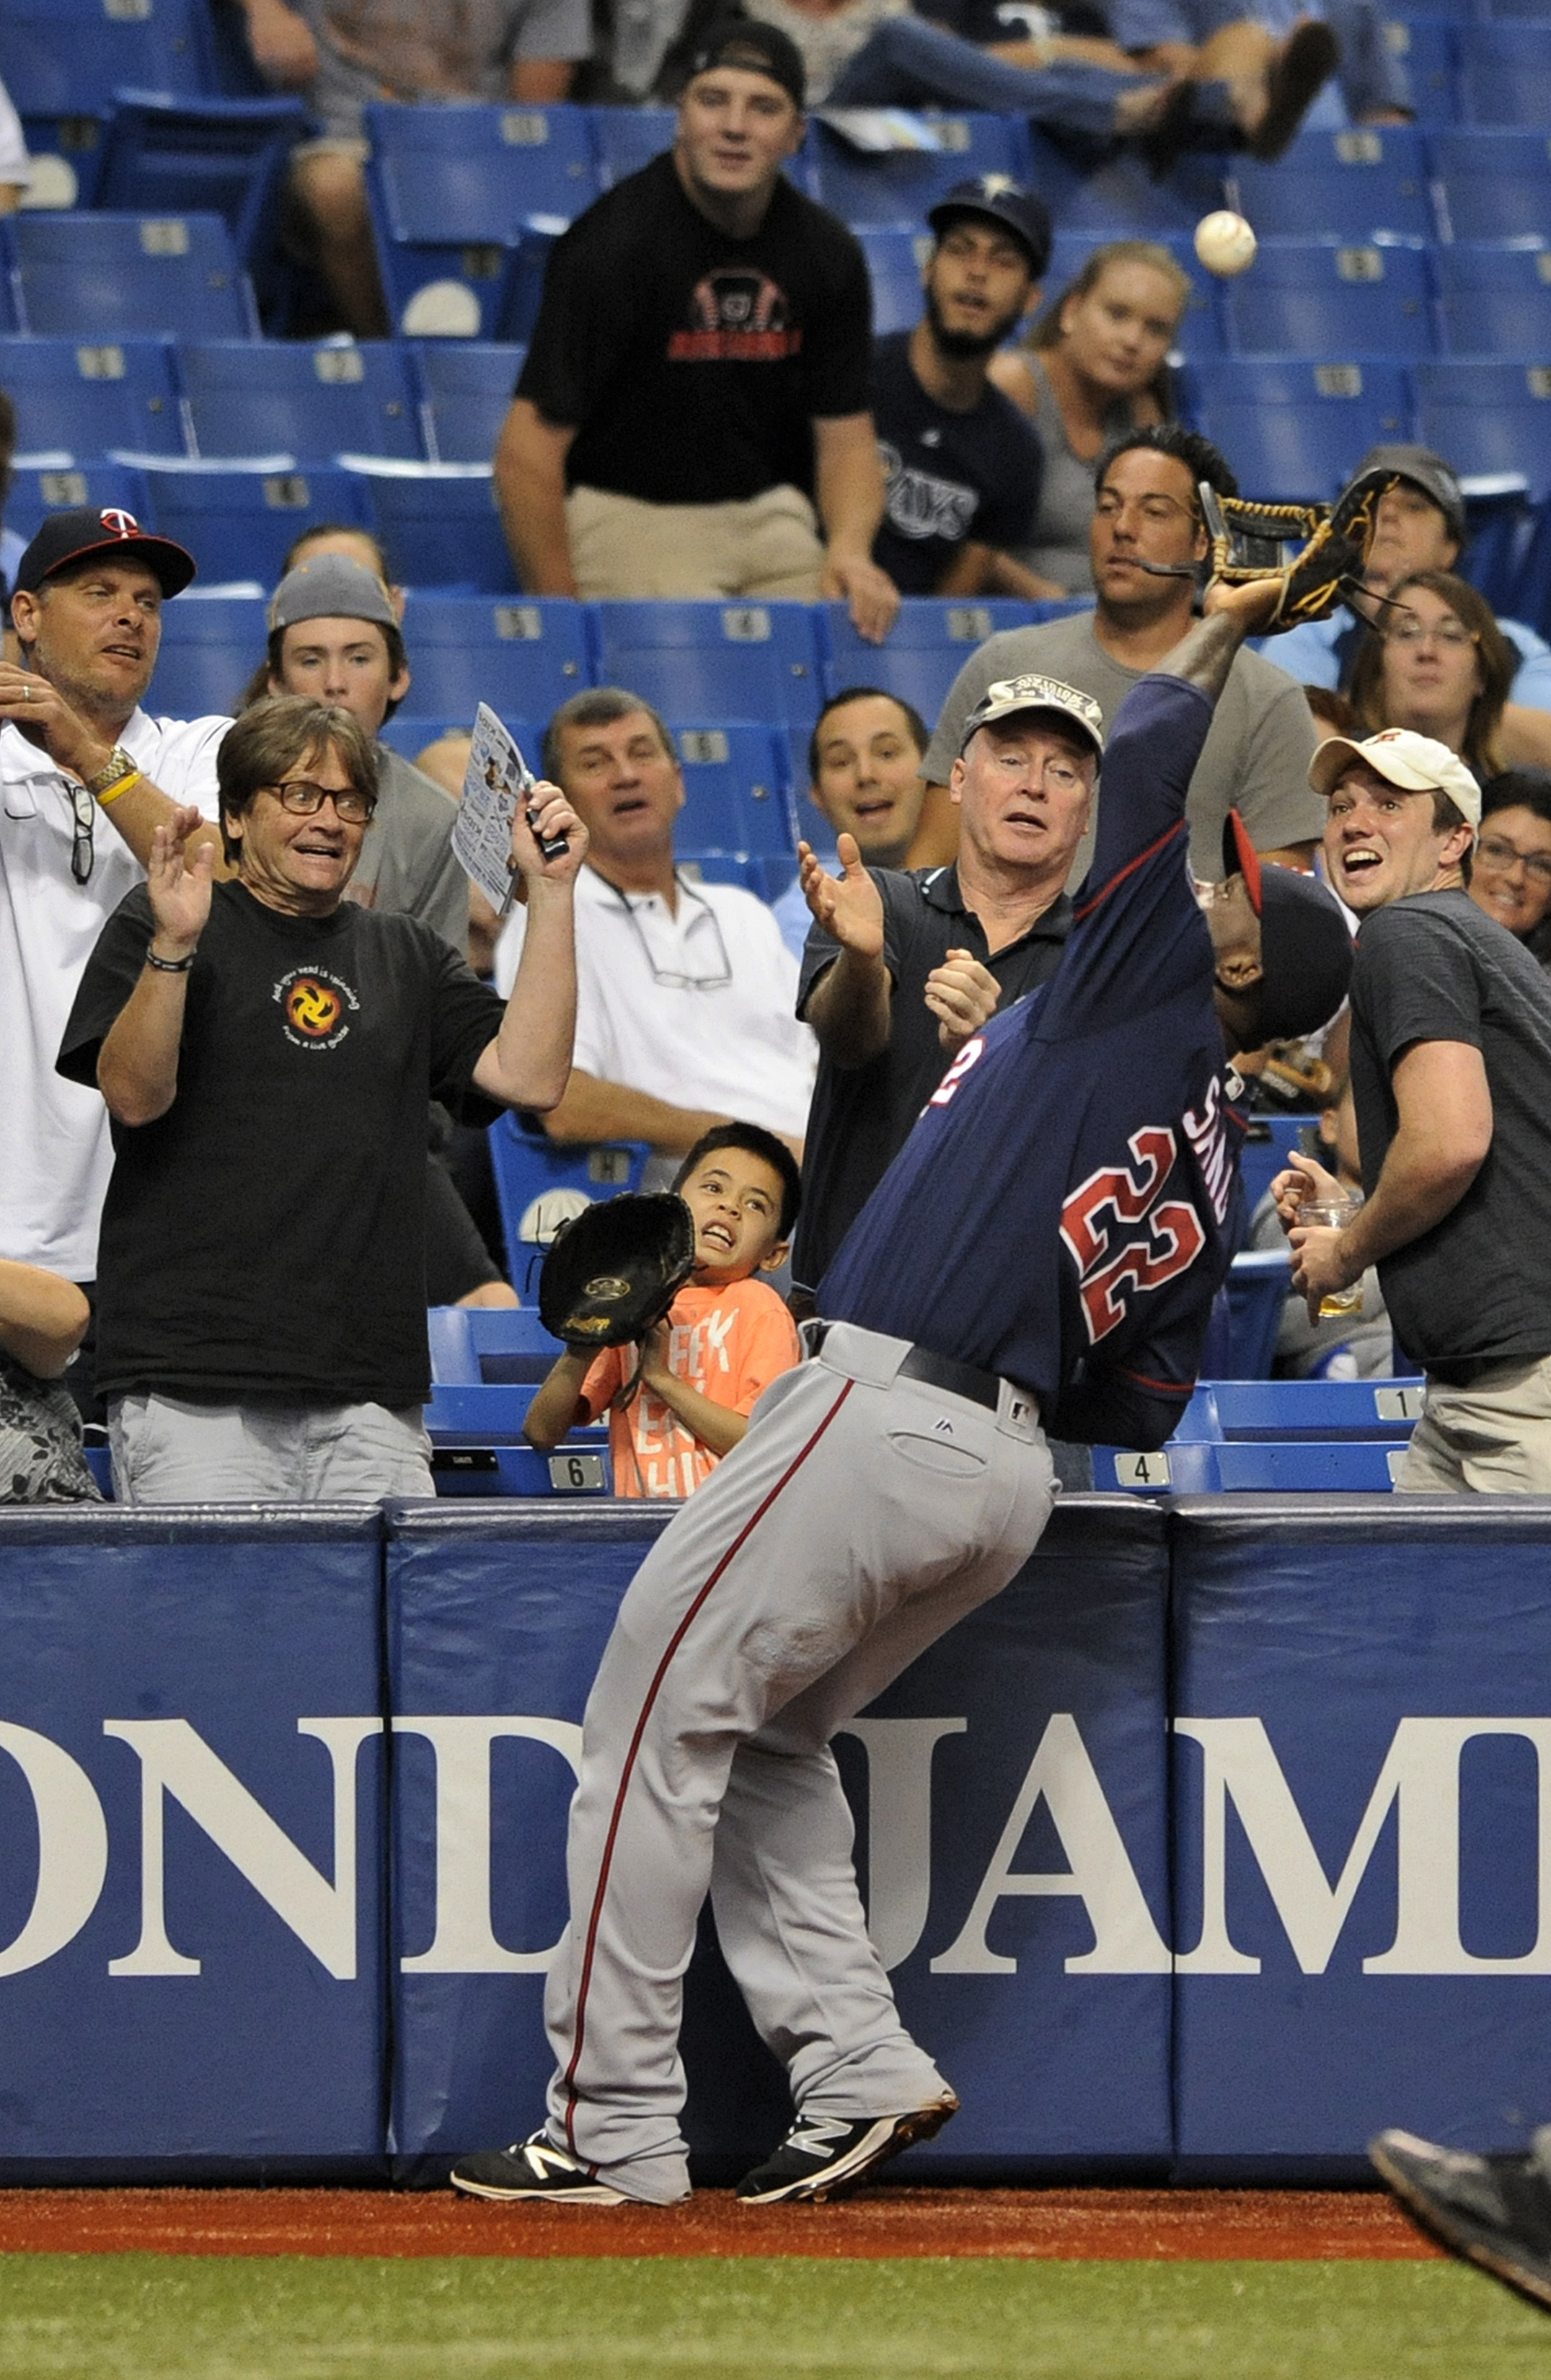 Fans watch as Minnesota Twins third baseman Miguel Sano reaches for a foul ball hit by Tampa Bay Rays' Corey Dickerson during the second inning of a baseball game Sunday, Aug. 7, 2016, in St. Petersburg, Fla. (AP Photo/Steve Nesius)